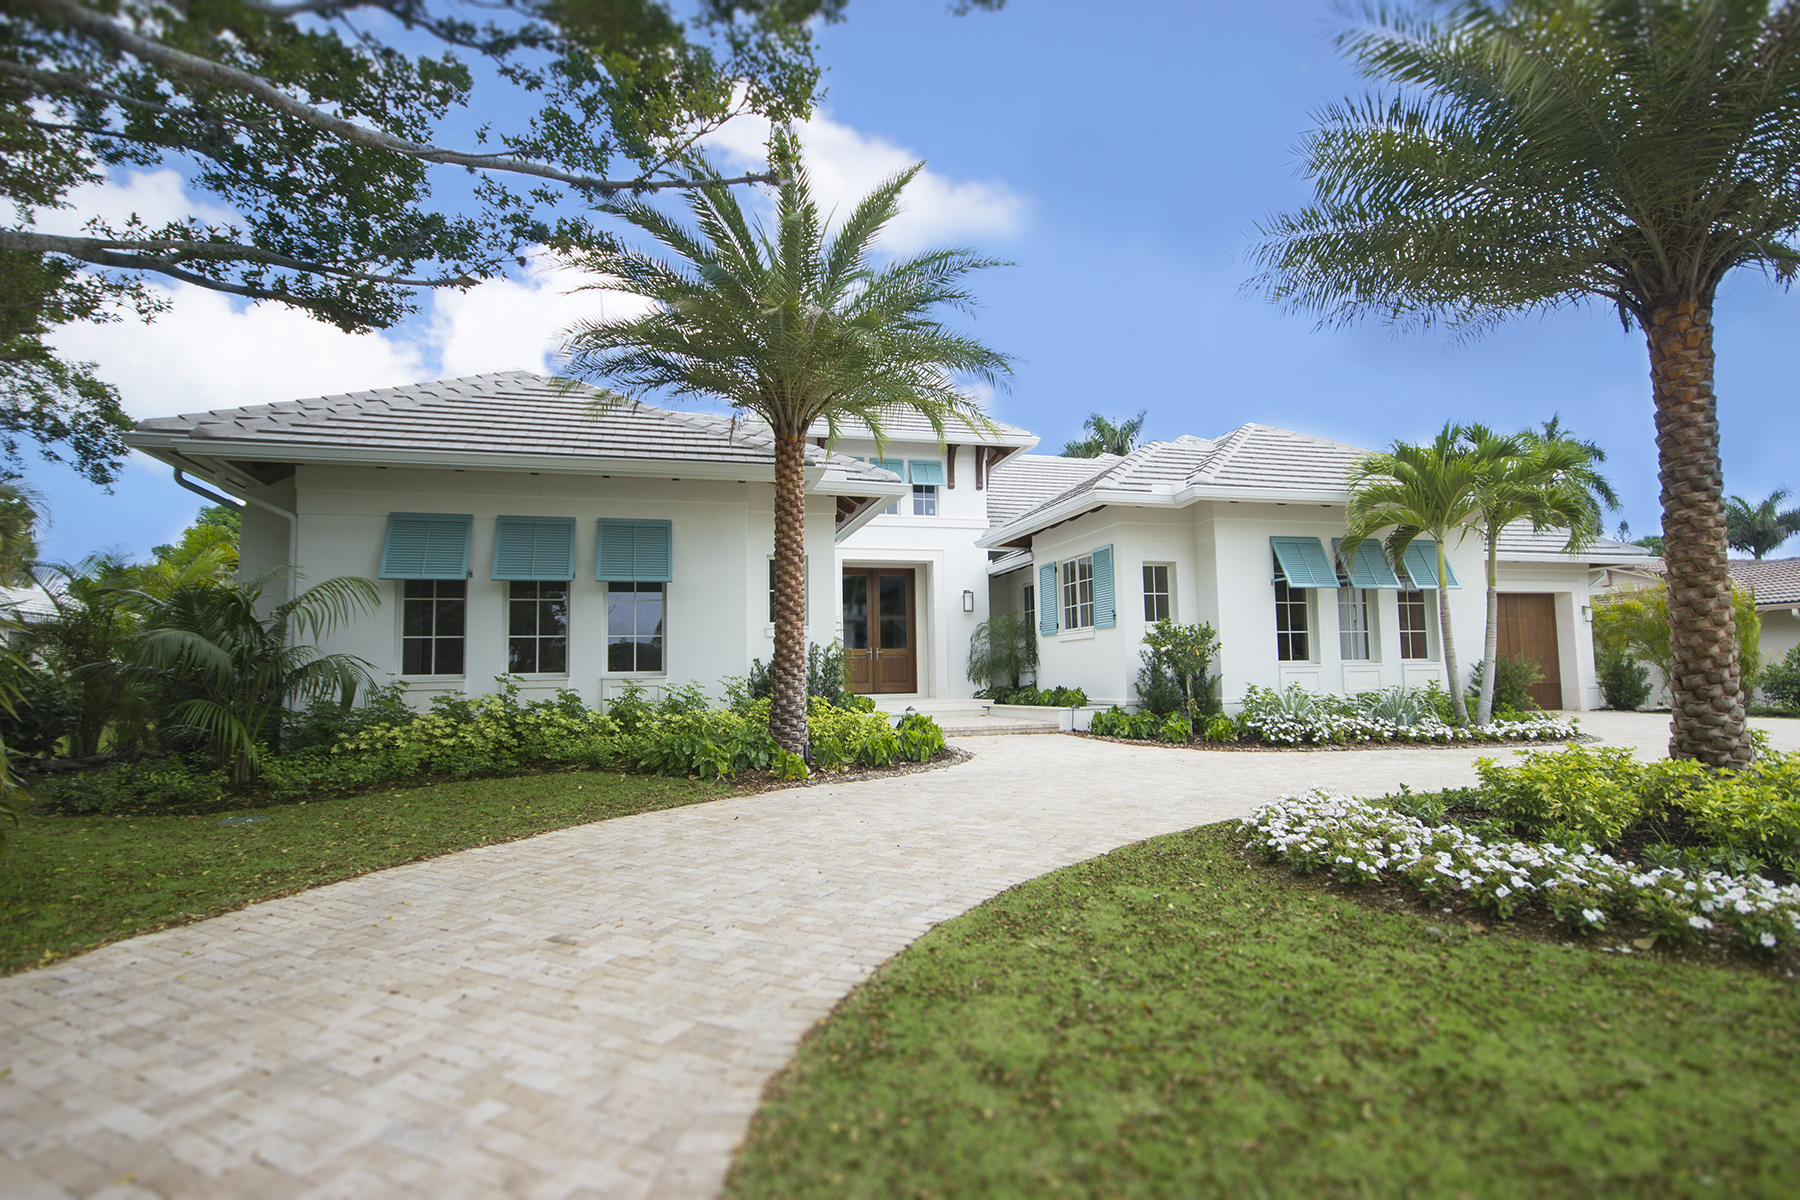 Single Family Home for Sale at MOORINGS 3156 Crayton Rd, Naples, Florida 34103 United States